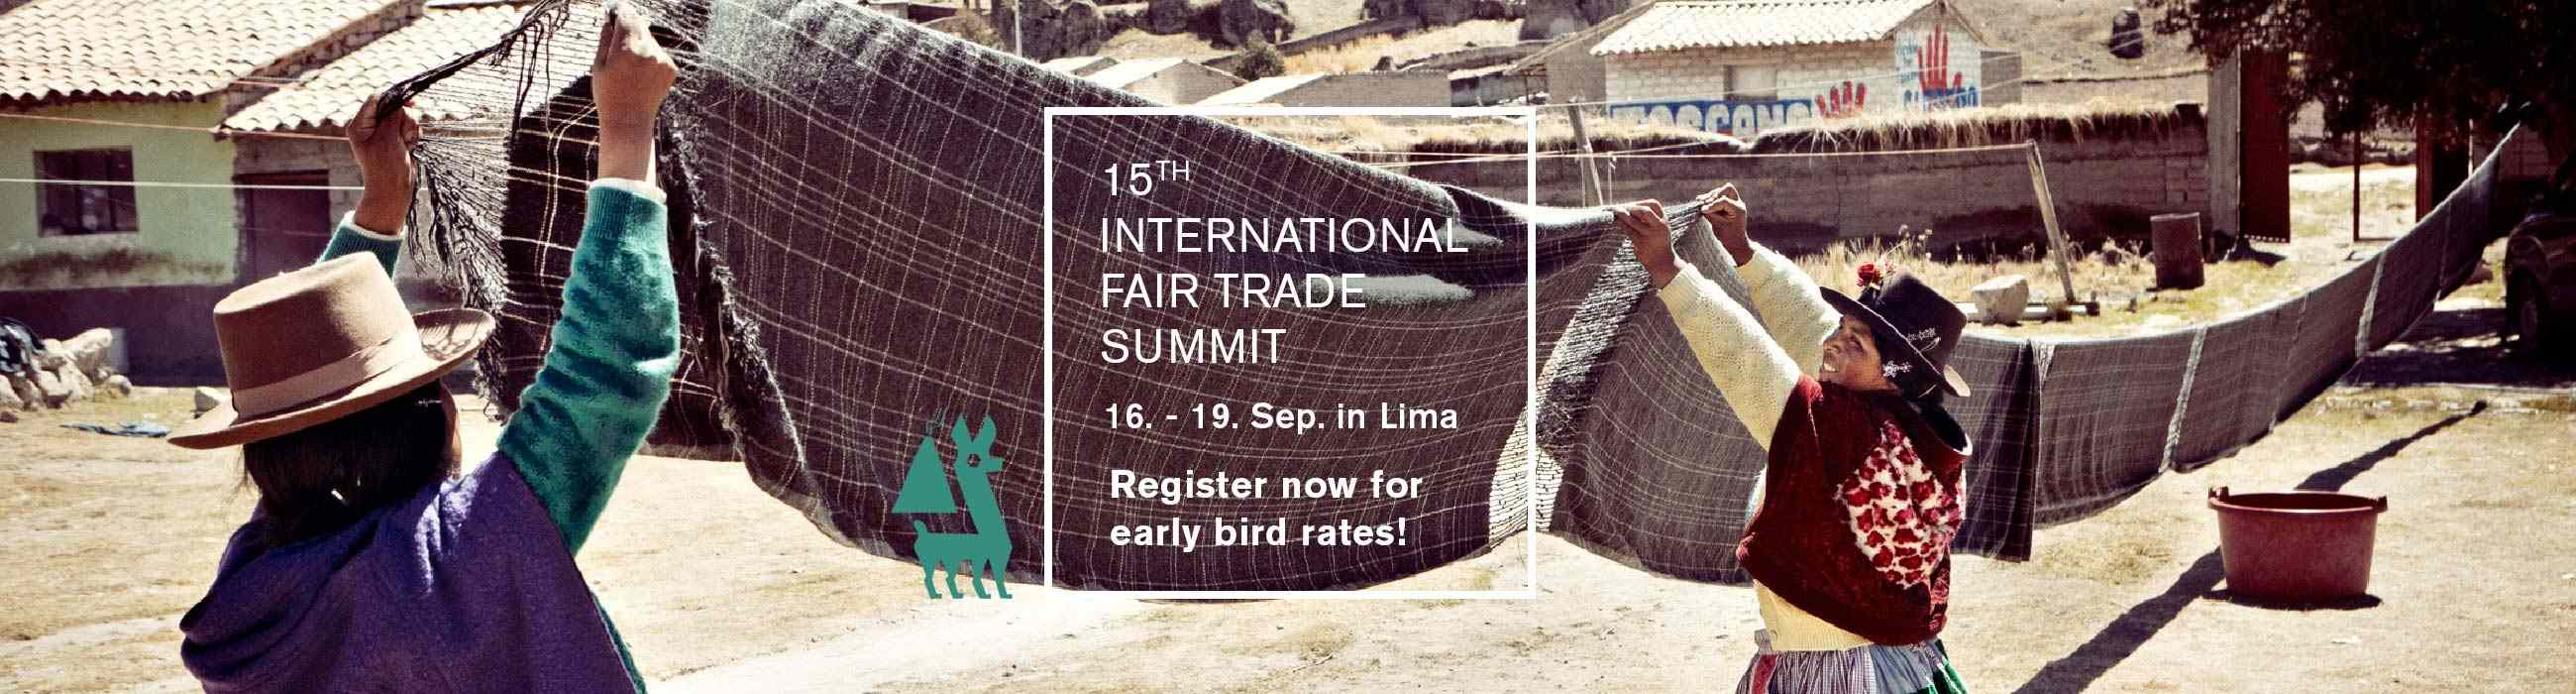 International Fair Trade Summit - Lima, Peru